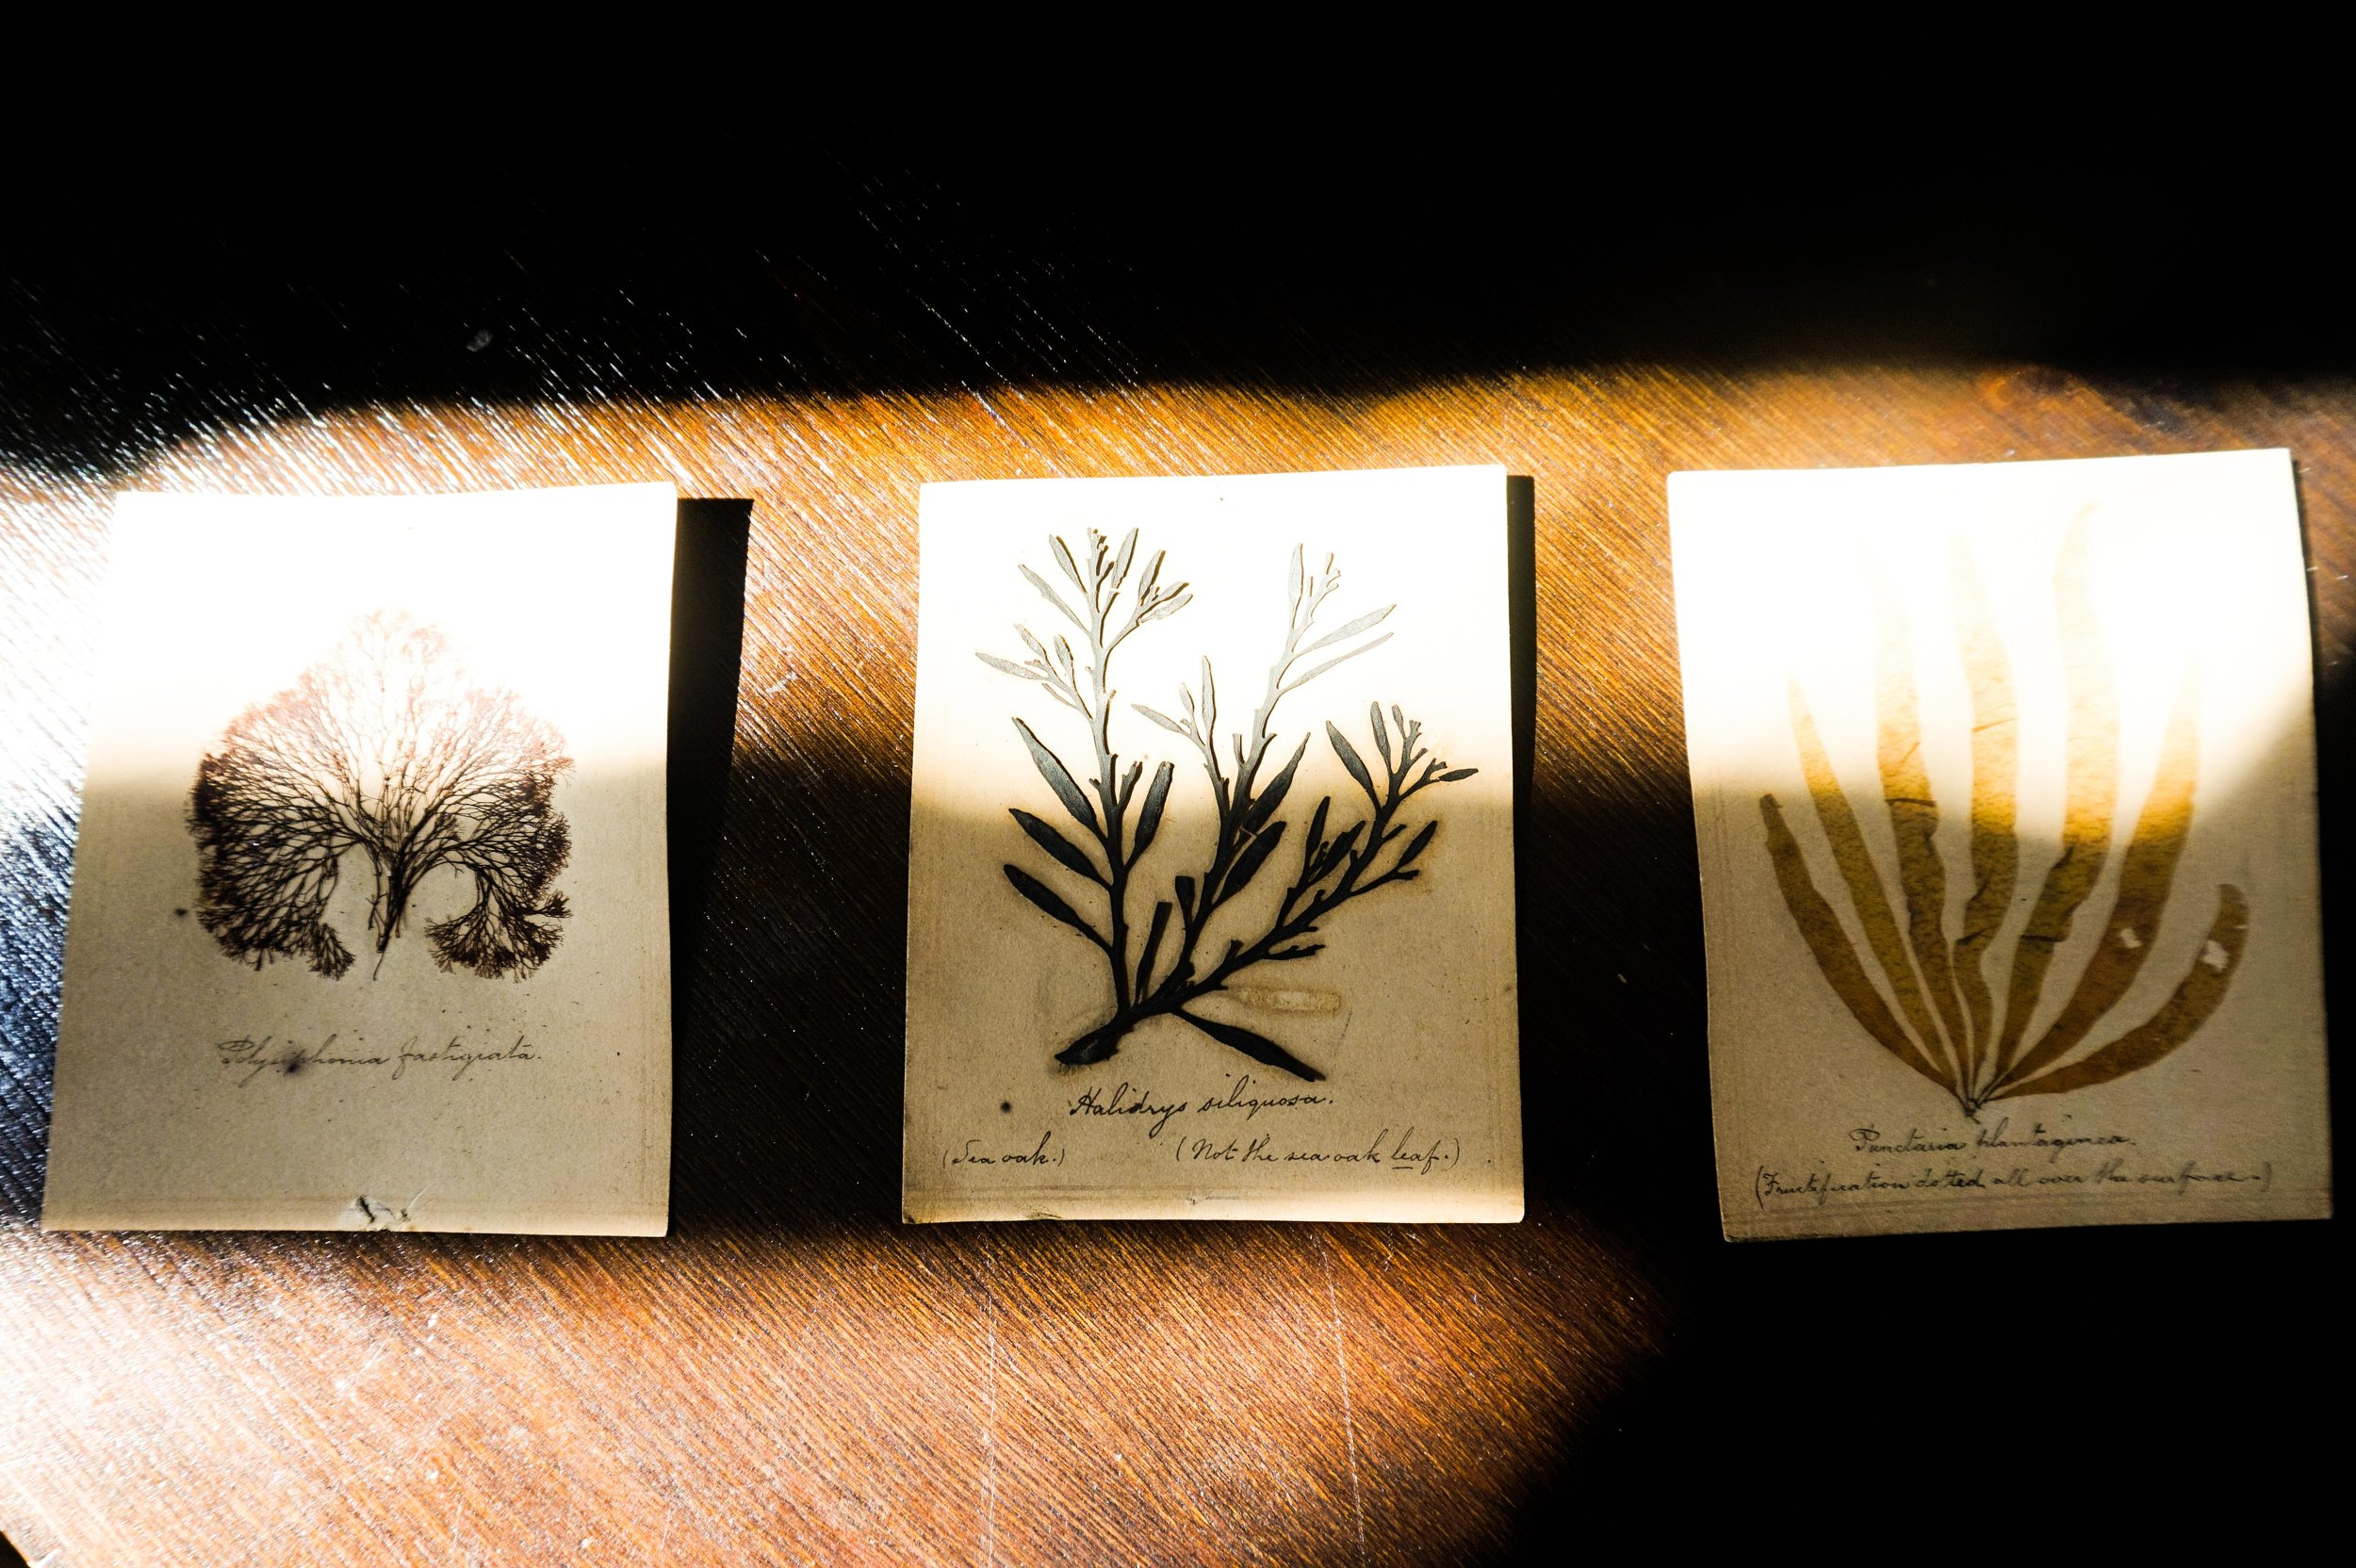 'Pressed seaweed from the Whitaker Museum collection'